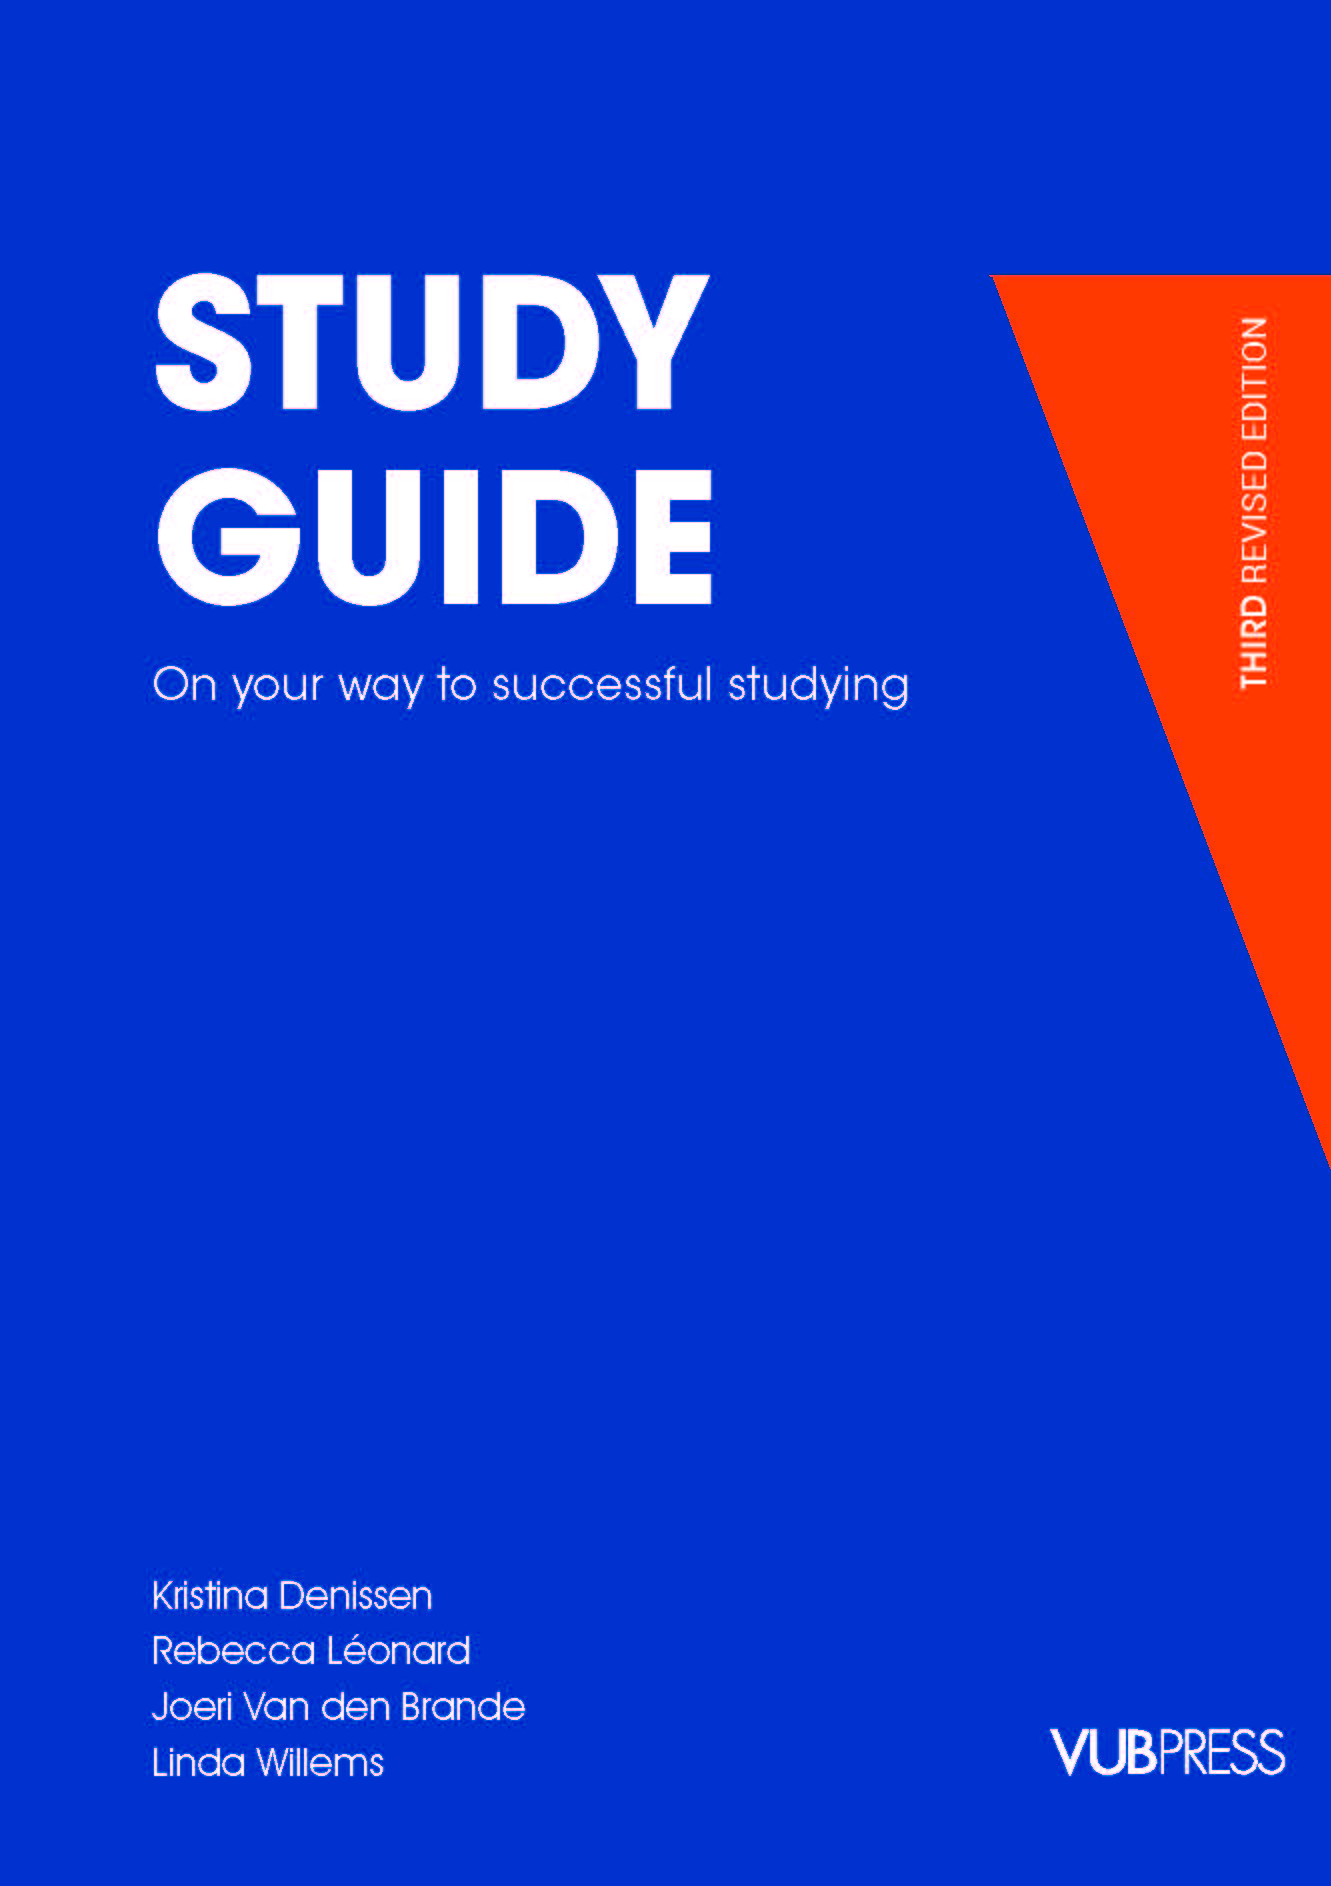 STUDY GUIDE (THIRD REVISED EDITION)